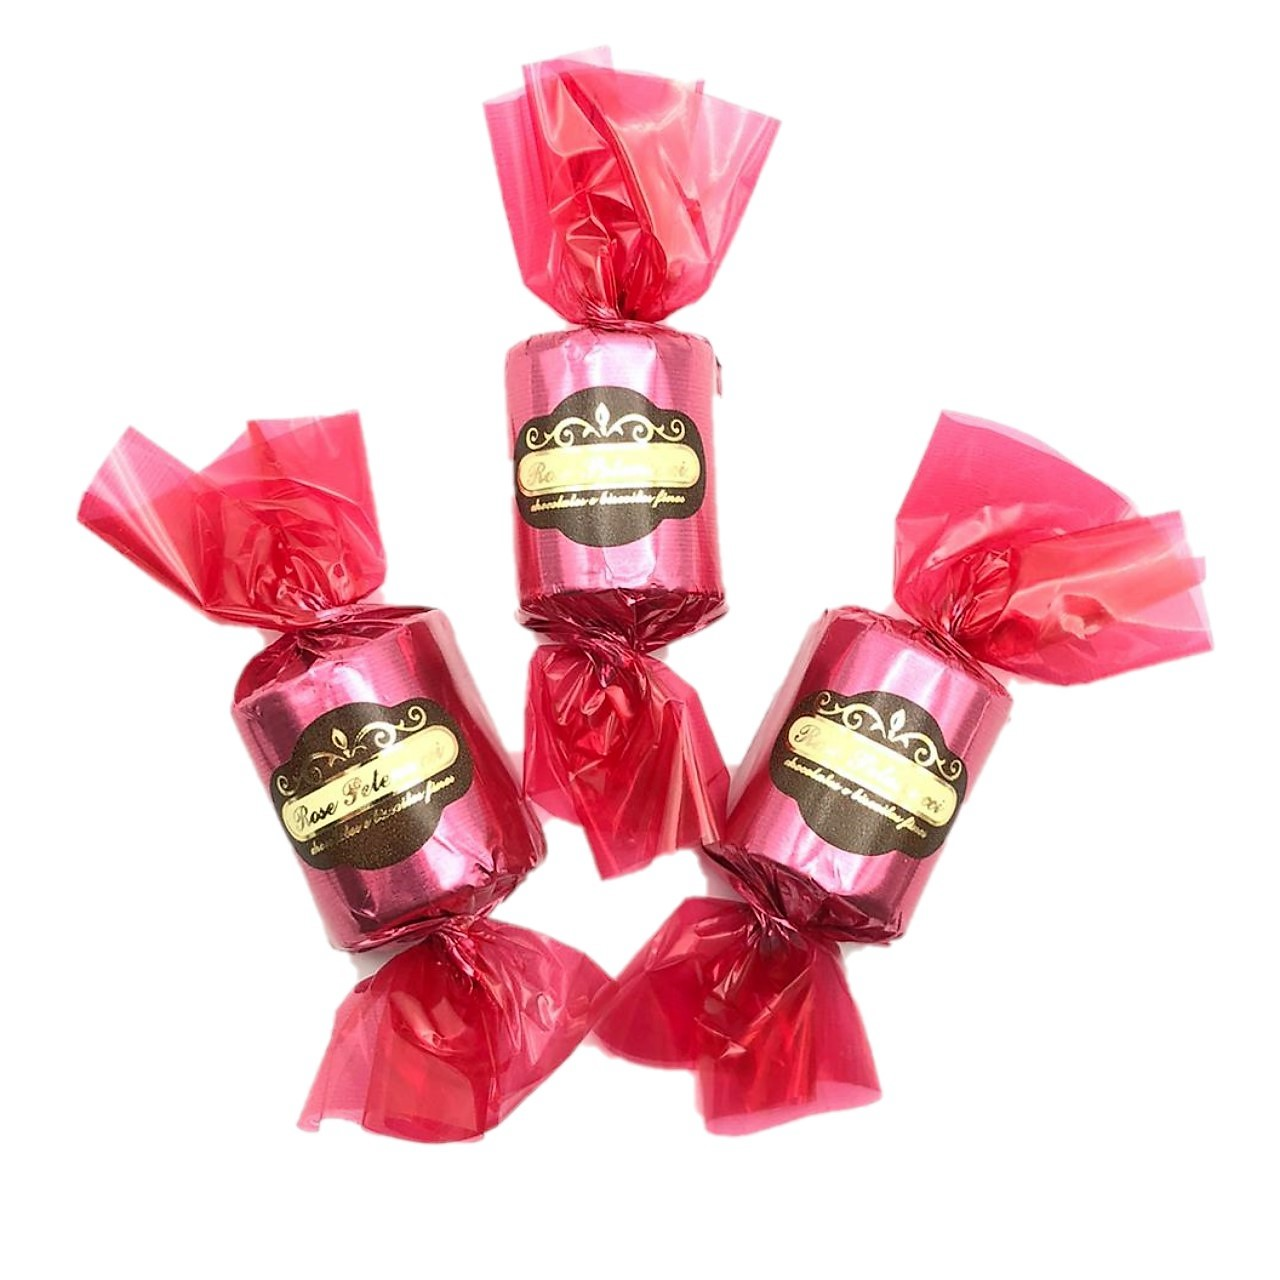 Combo 3 Bombons Chocolate Gold com Caramelo